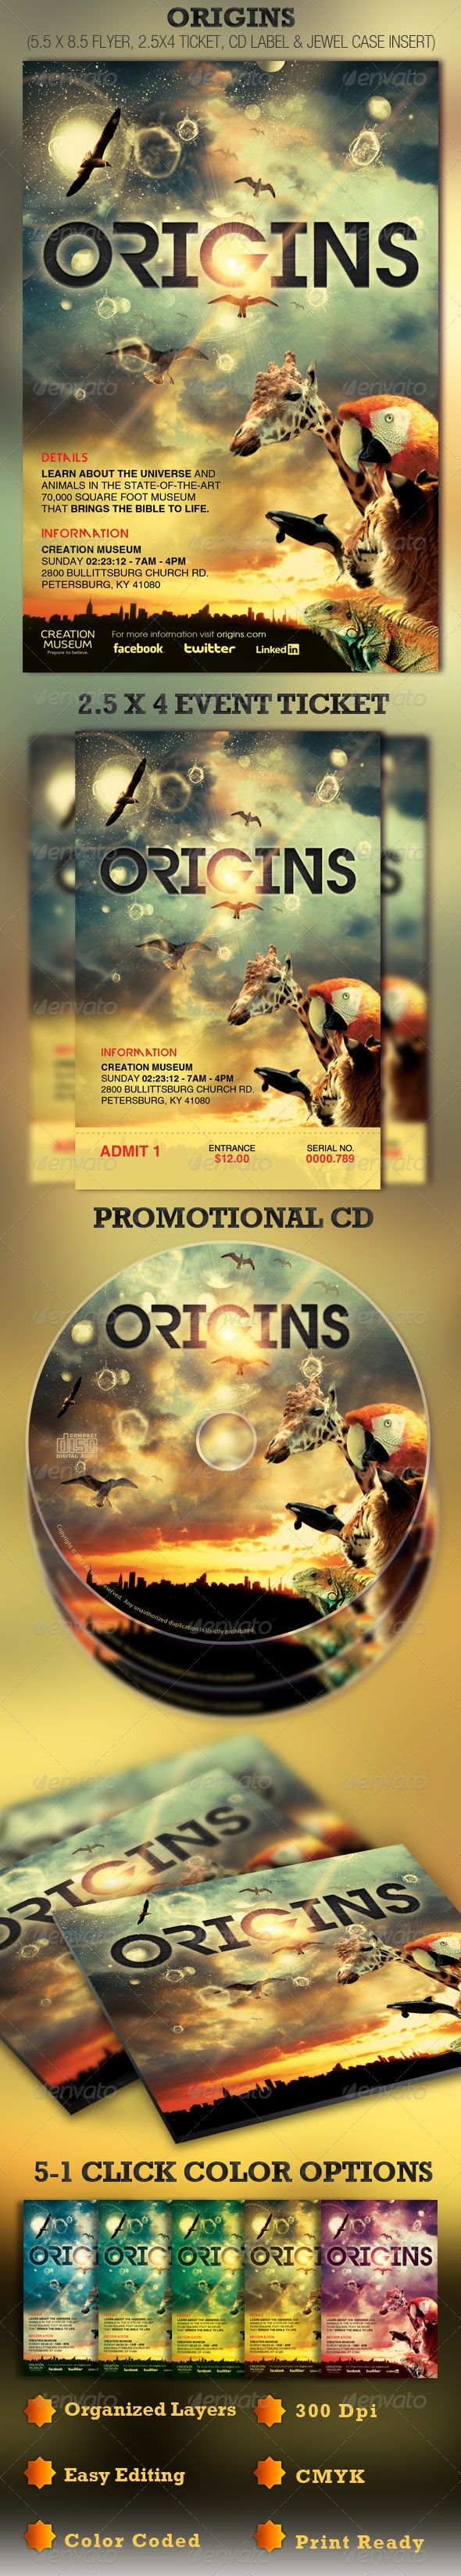 Origins Flyer, Ticket and CD Template - Price: $7.00